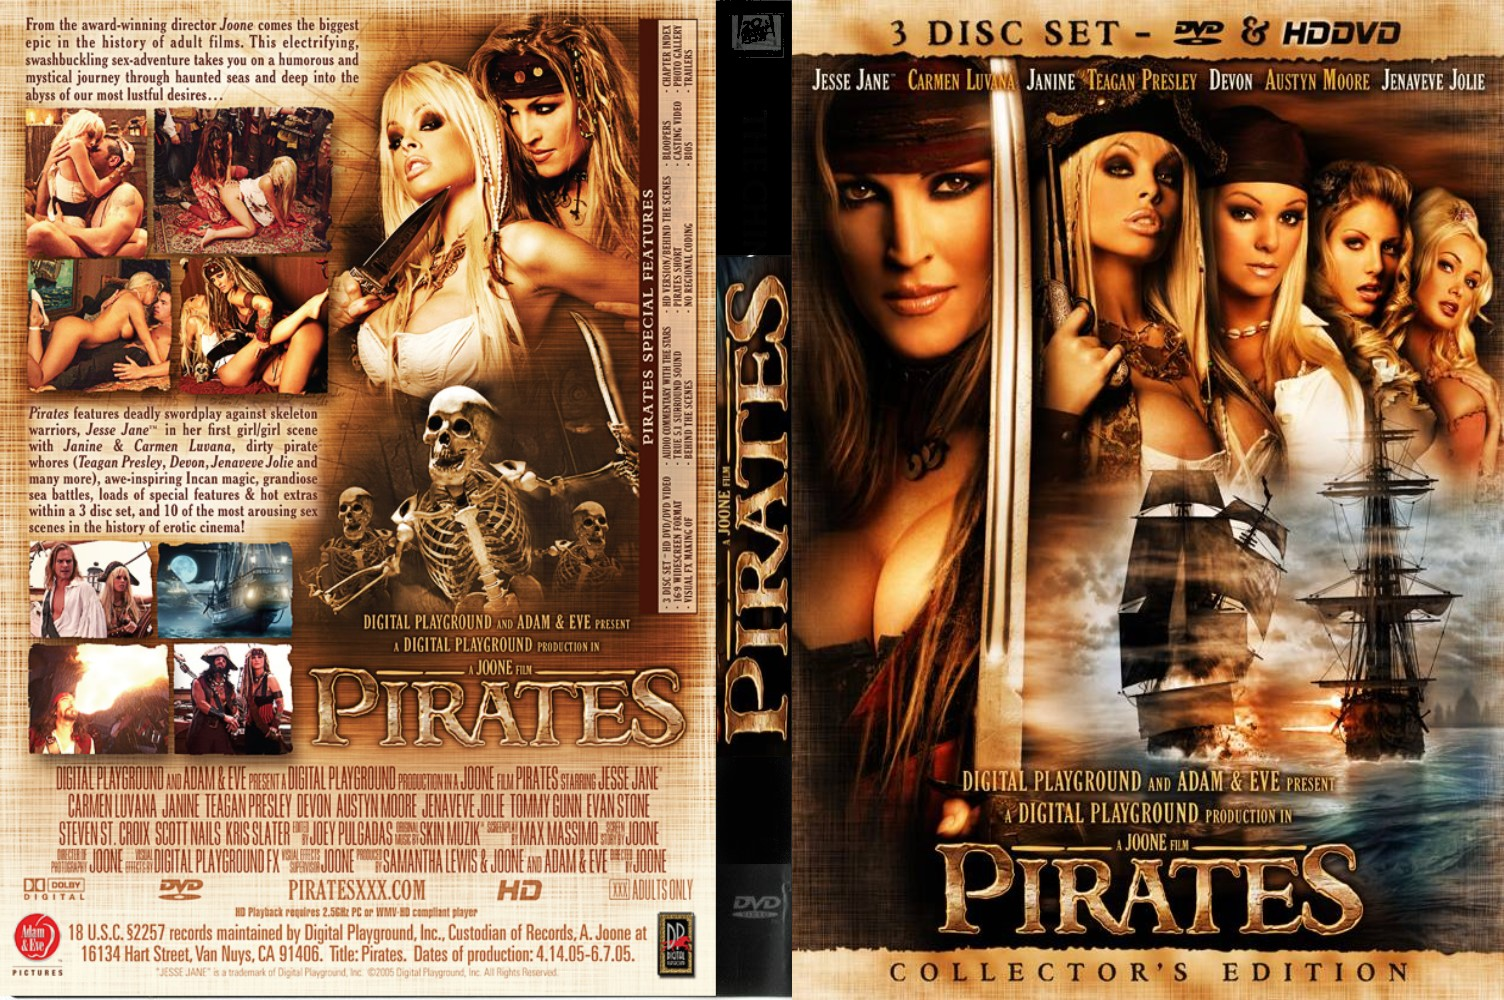 Pirates film sexual image hardcore clips